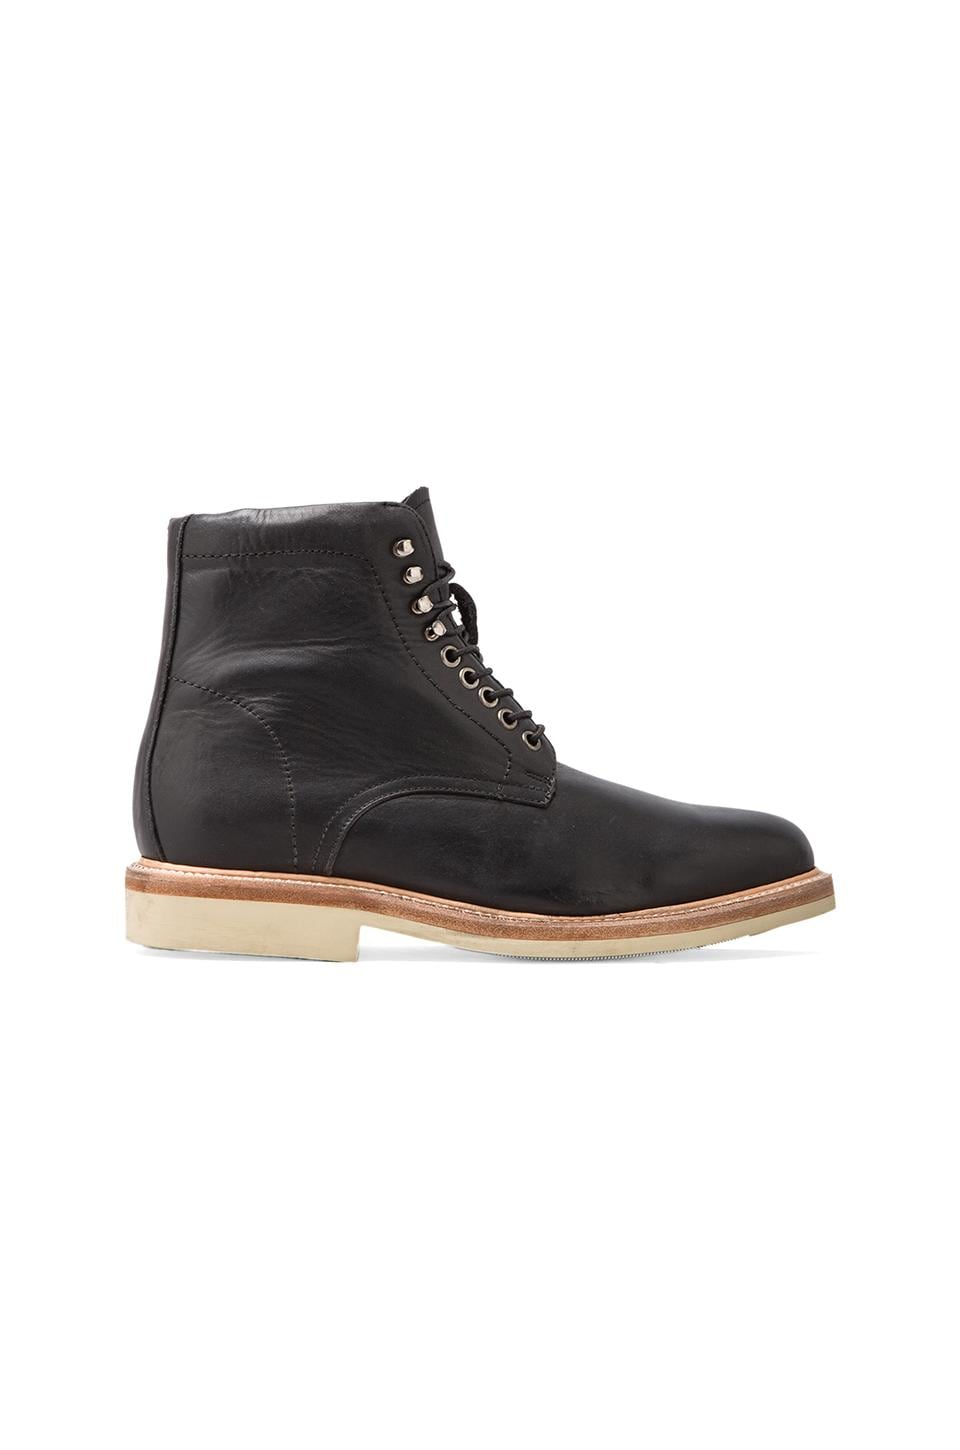 J.D. FISK Jamie Boot in Black